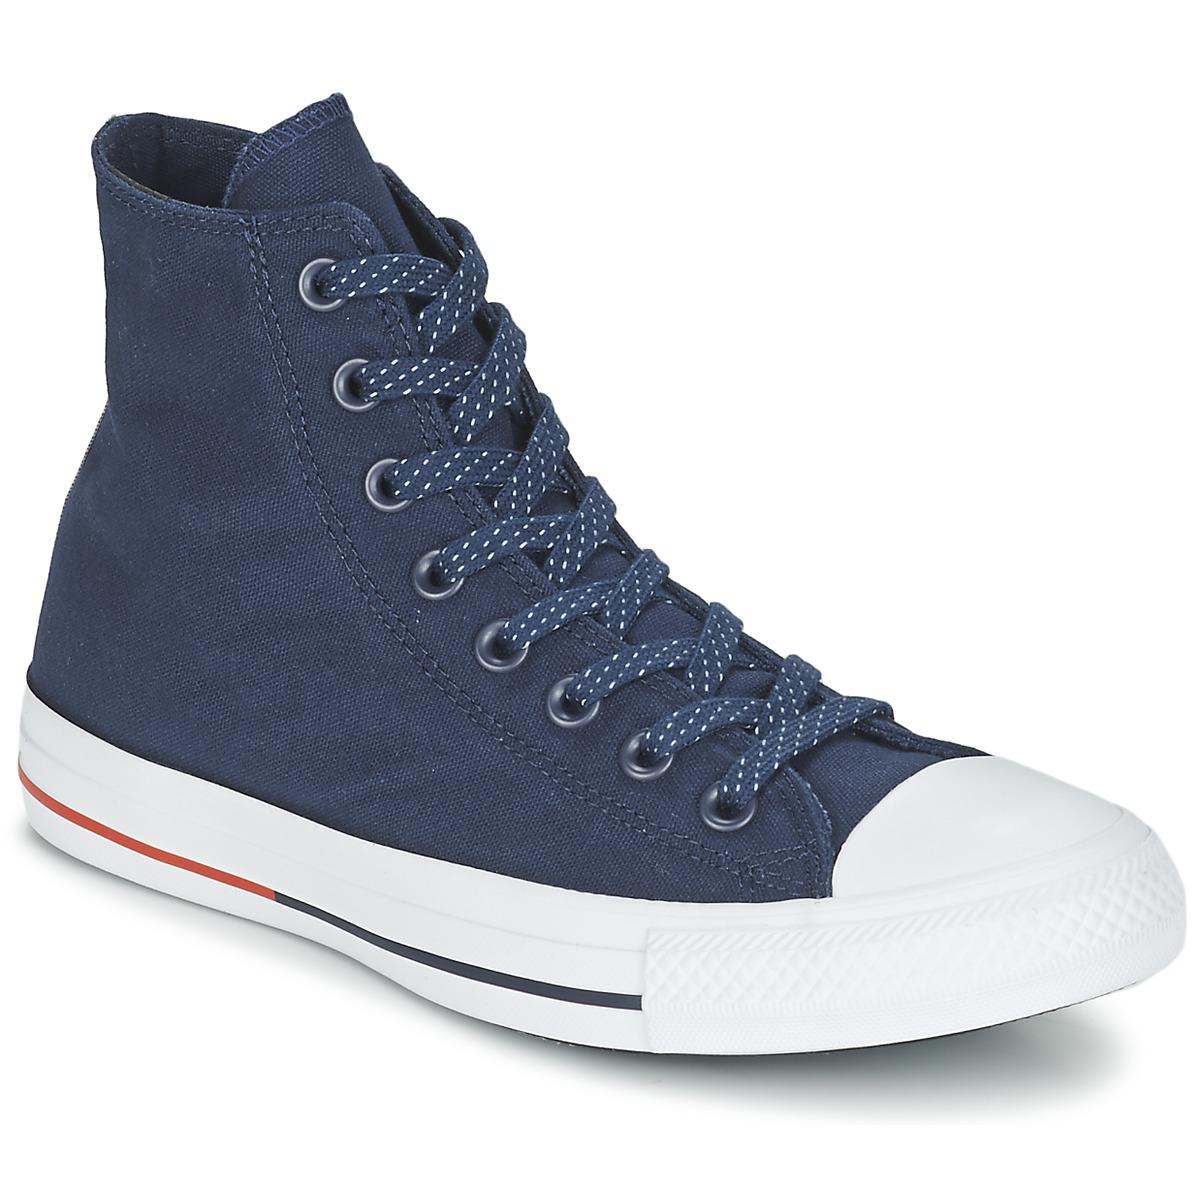 Converse ALL STAR HI women's Shoes (High-top Trainers) in Free Shipping Outlet Locations Sale Big Sale Visa Payment For Sale 0batXebc